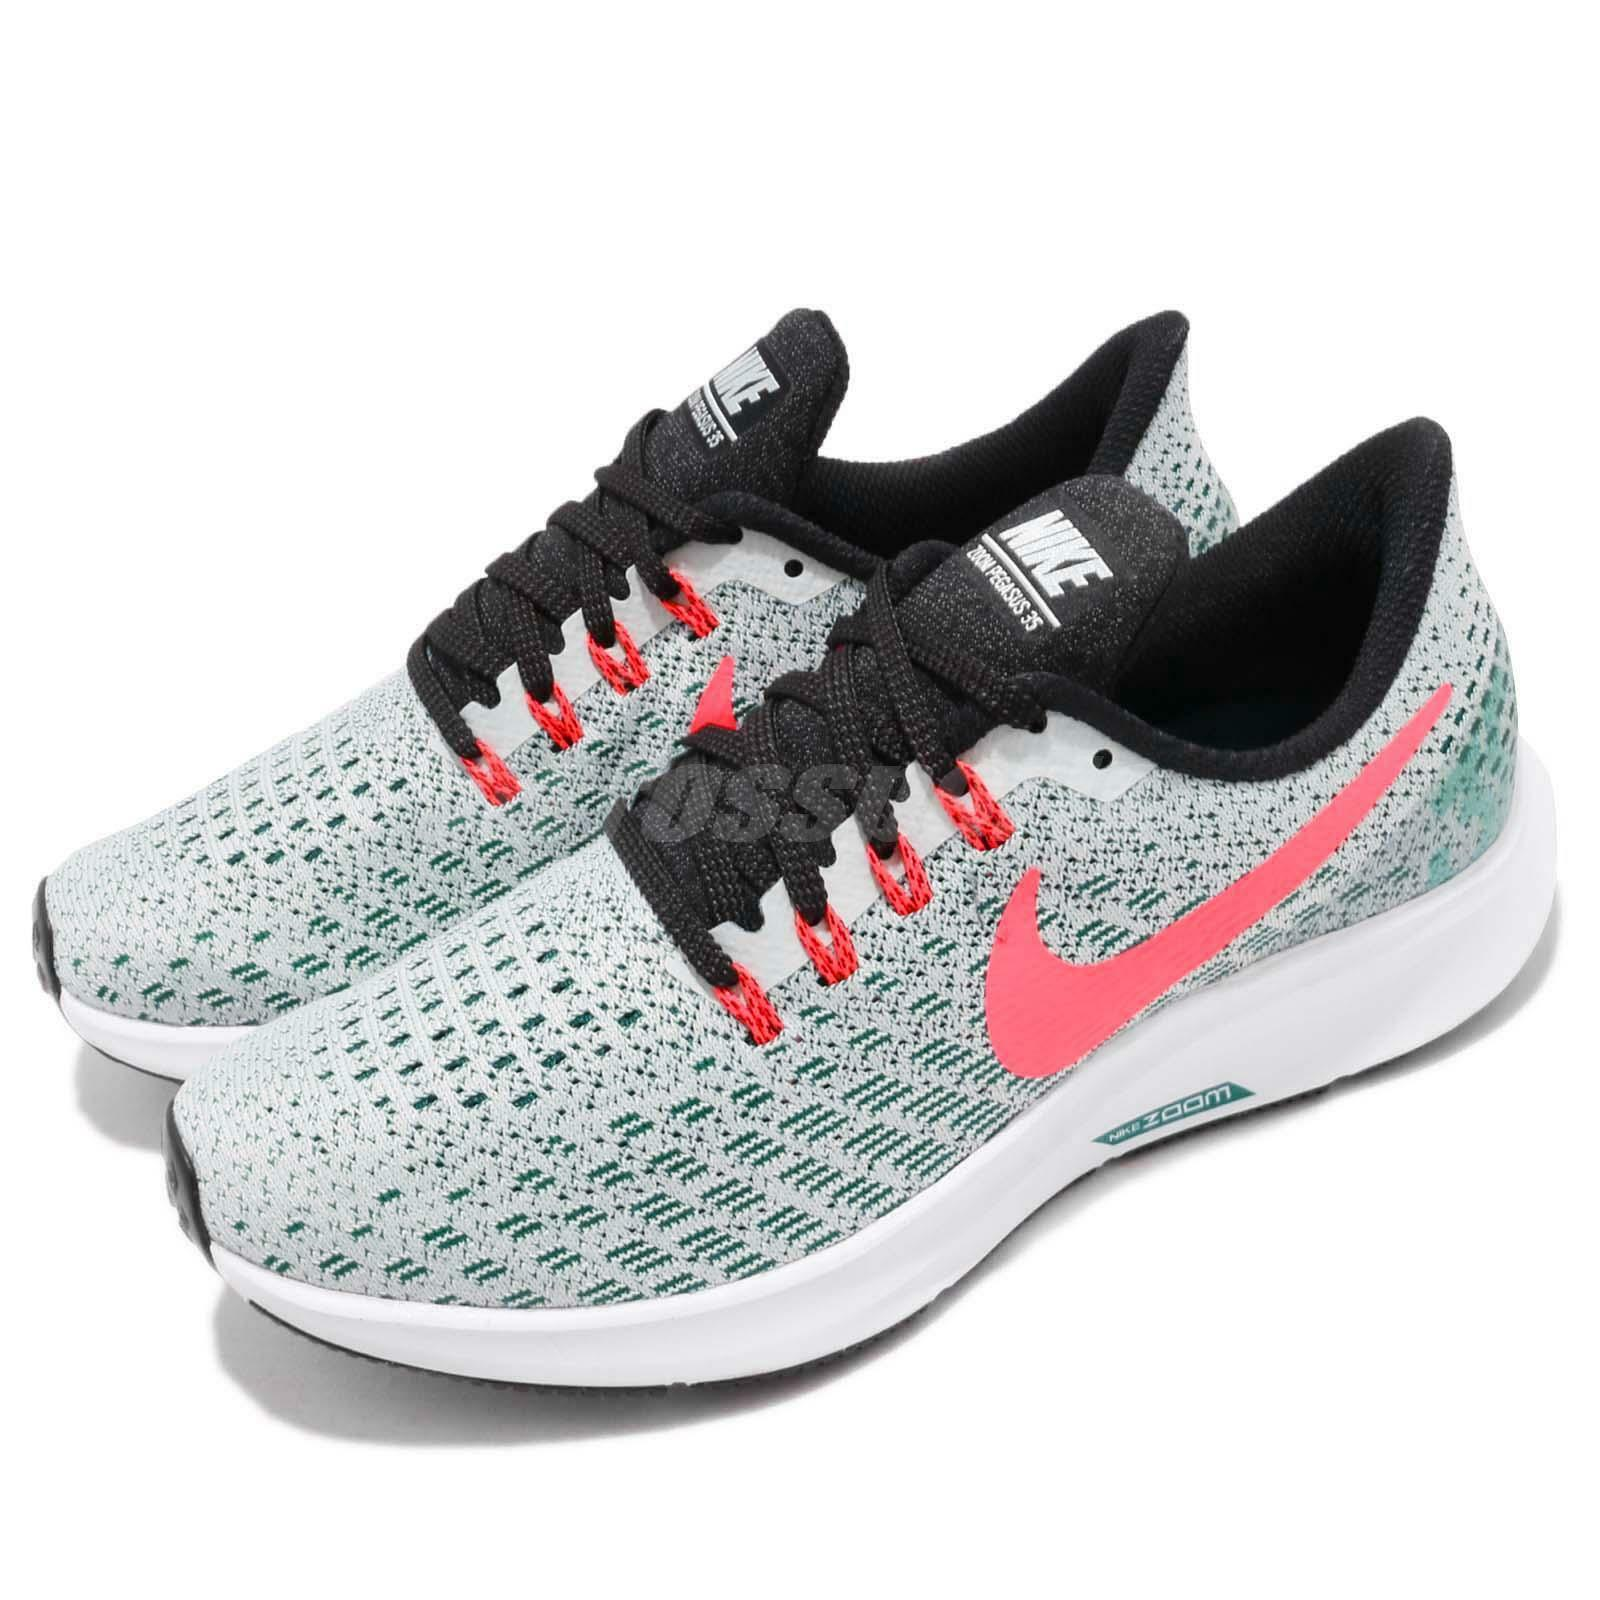 Nike Wmns Air Zoom Hot Pegasus 35 Barely Grey Hot Zoom Punch Women Shoes 942855-009 cf3092